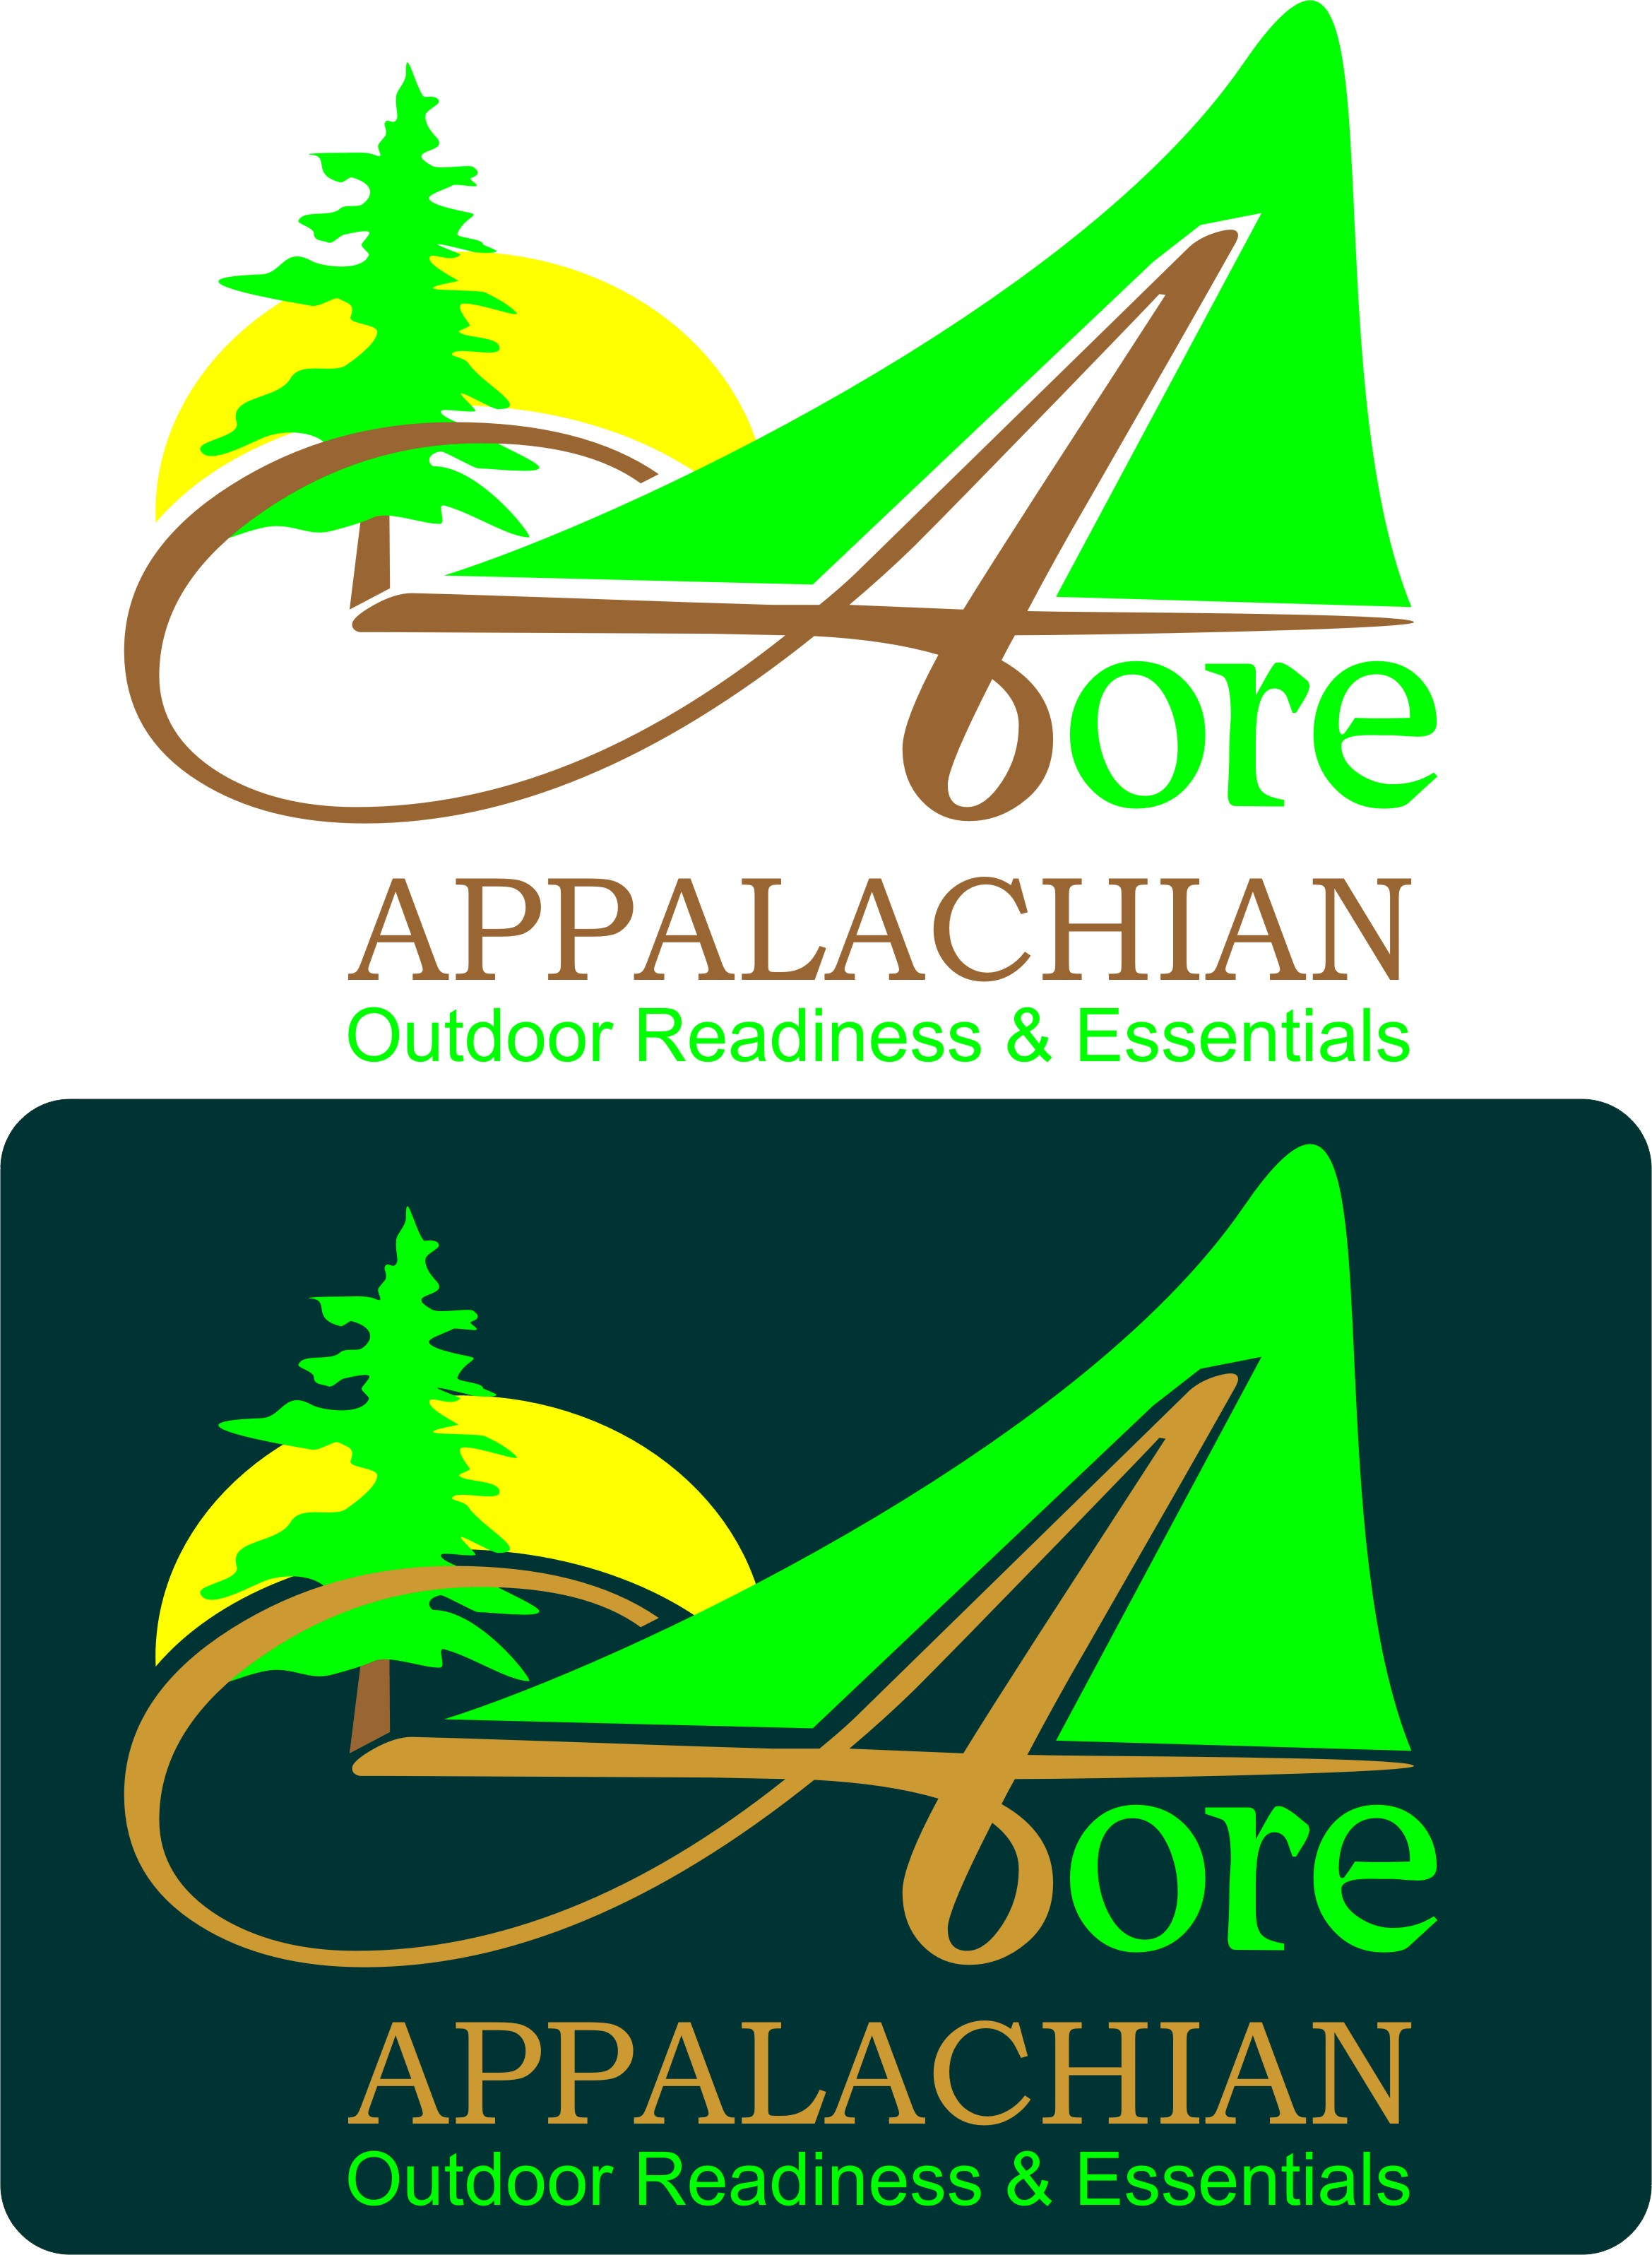 Logo Design by Korsunov Oleg - Entry No. 19 in the Logo Design Contest Imaginative Logo Design for Appalachian Outdoor Readiness & Essentials.